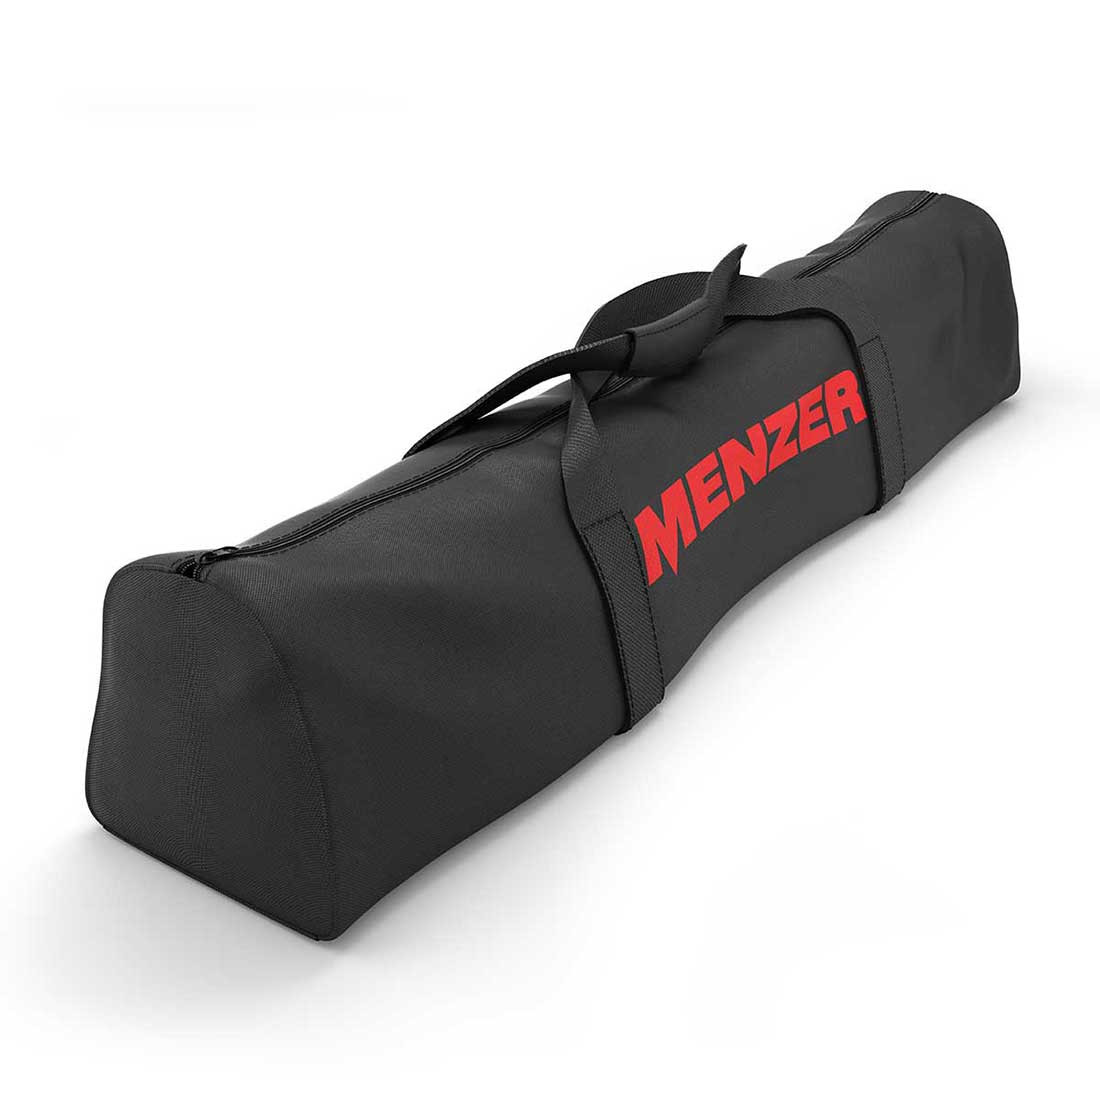 MENZER bag